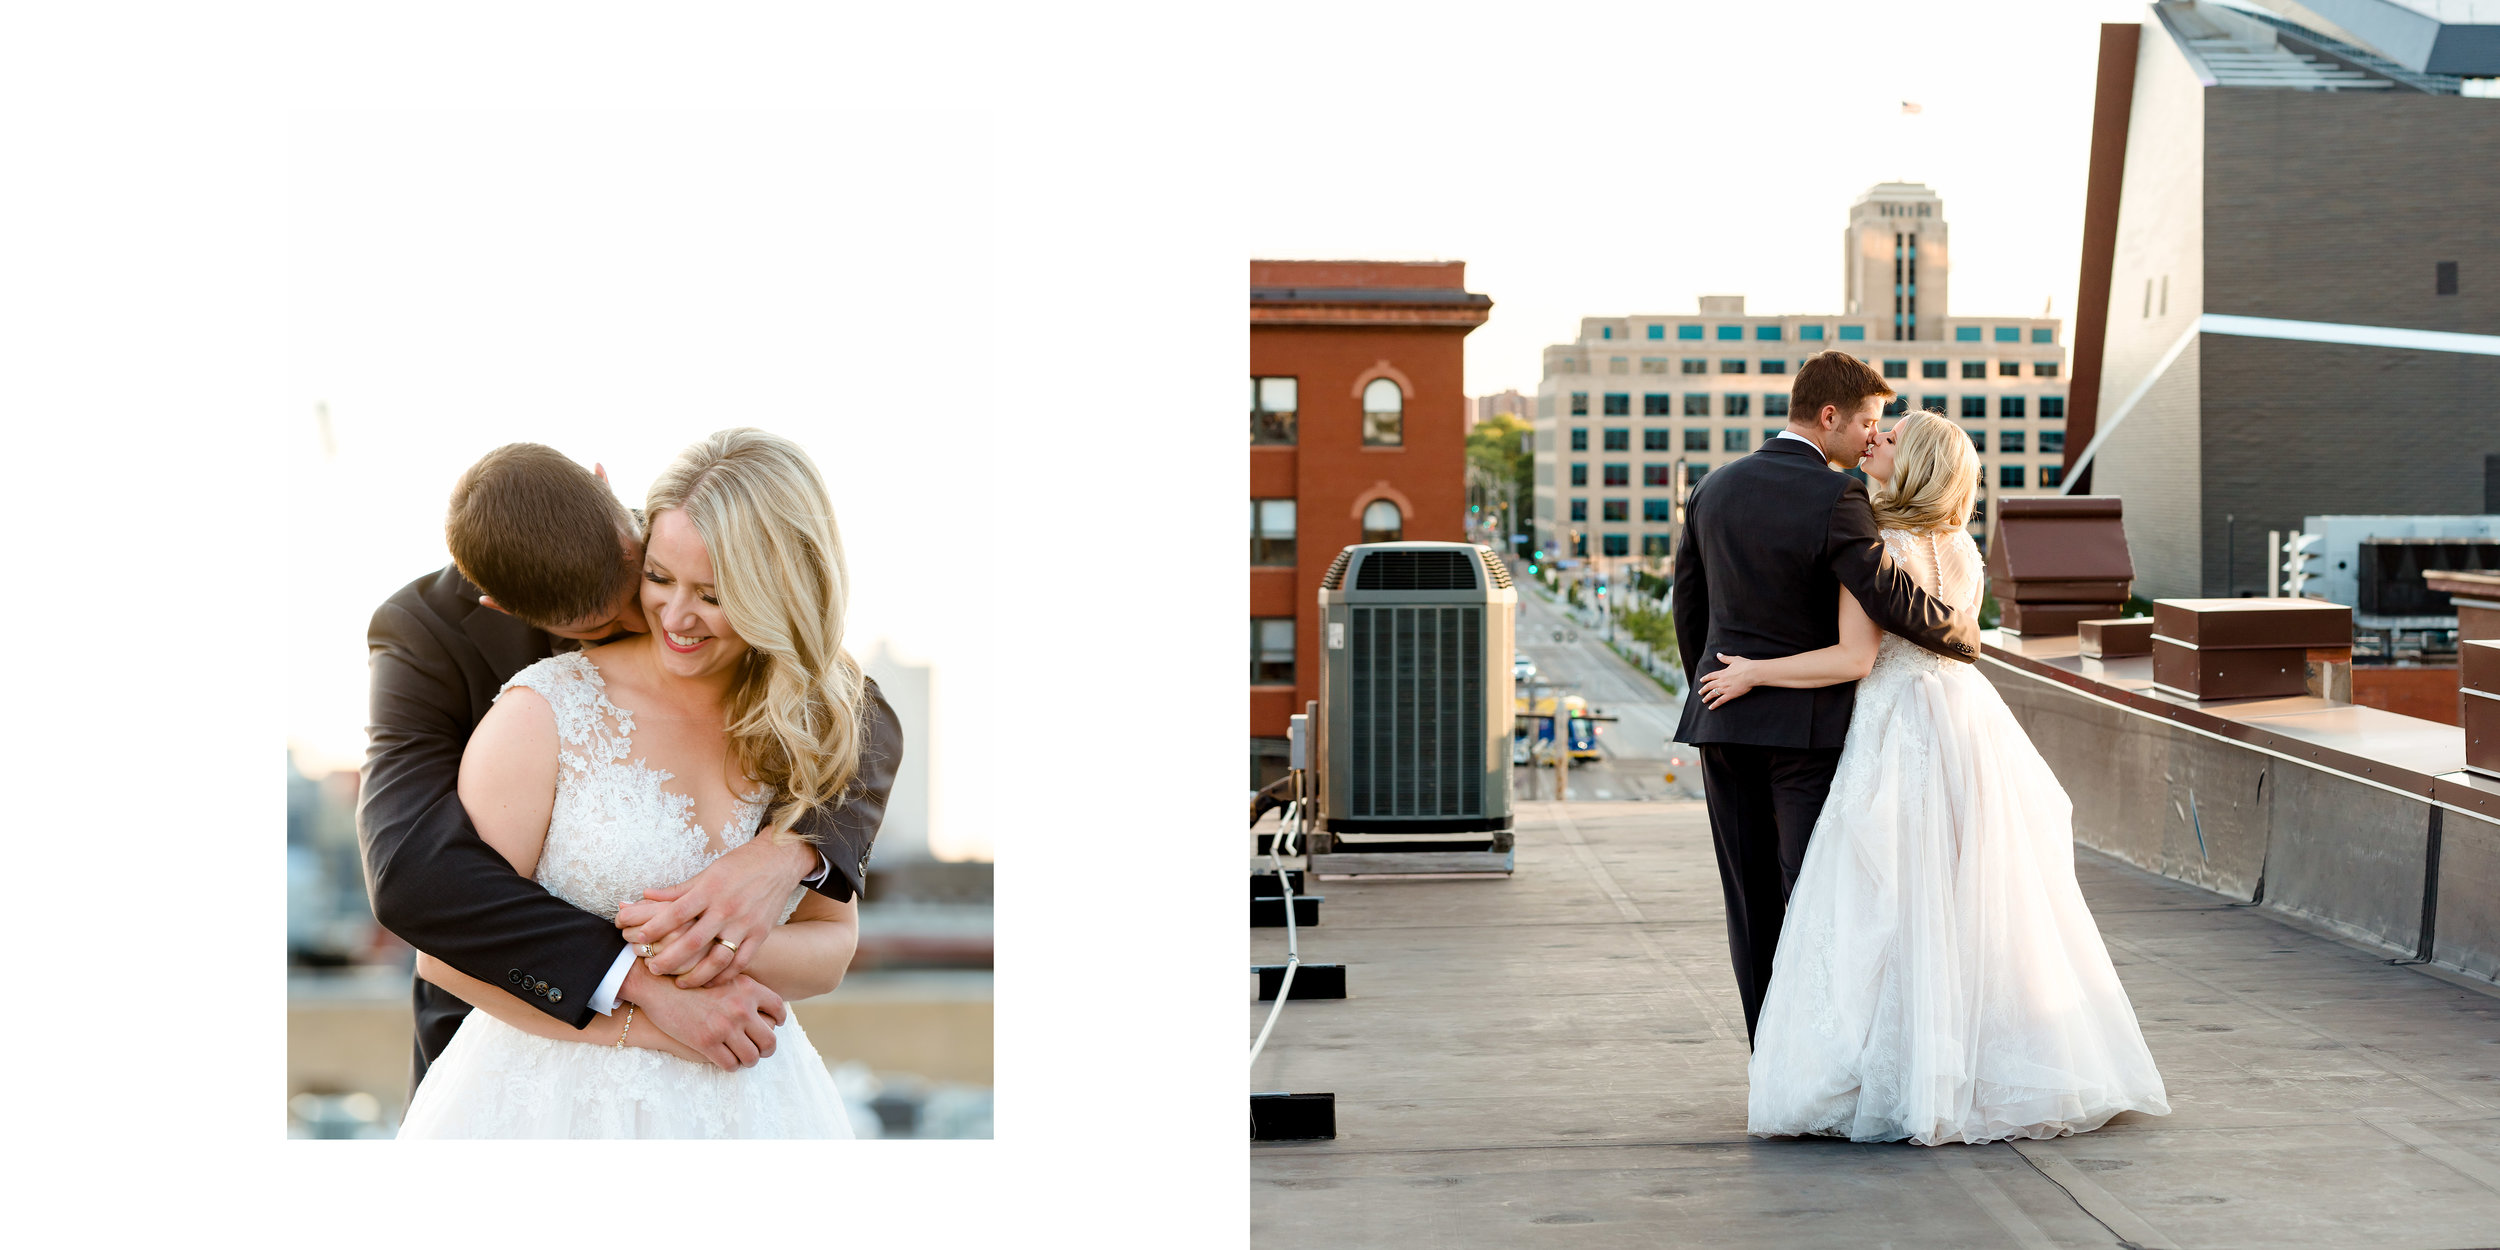 Kristen + Eric - Wedding Album Sample_47.jpg